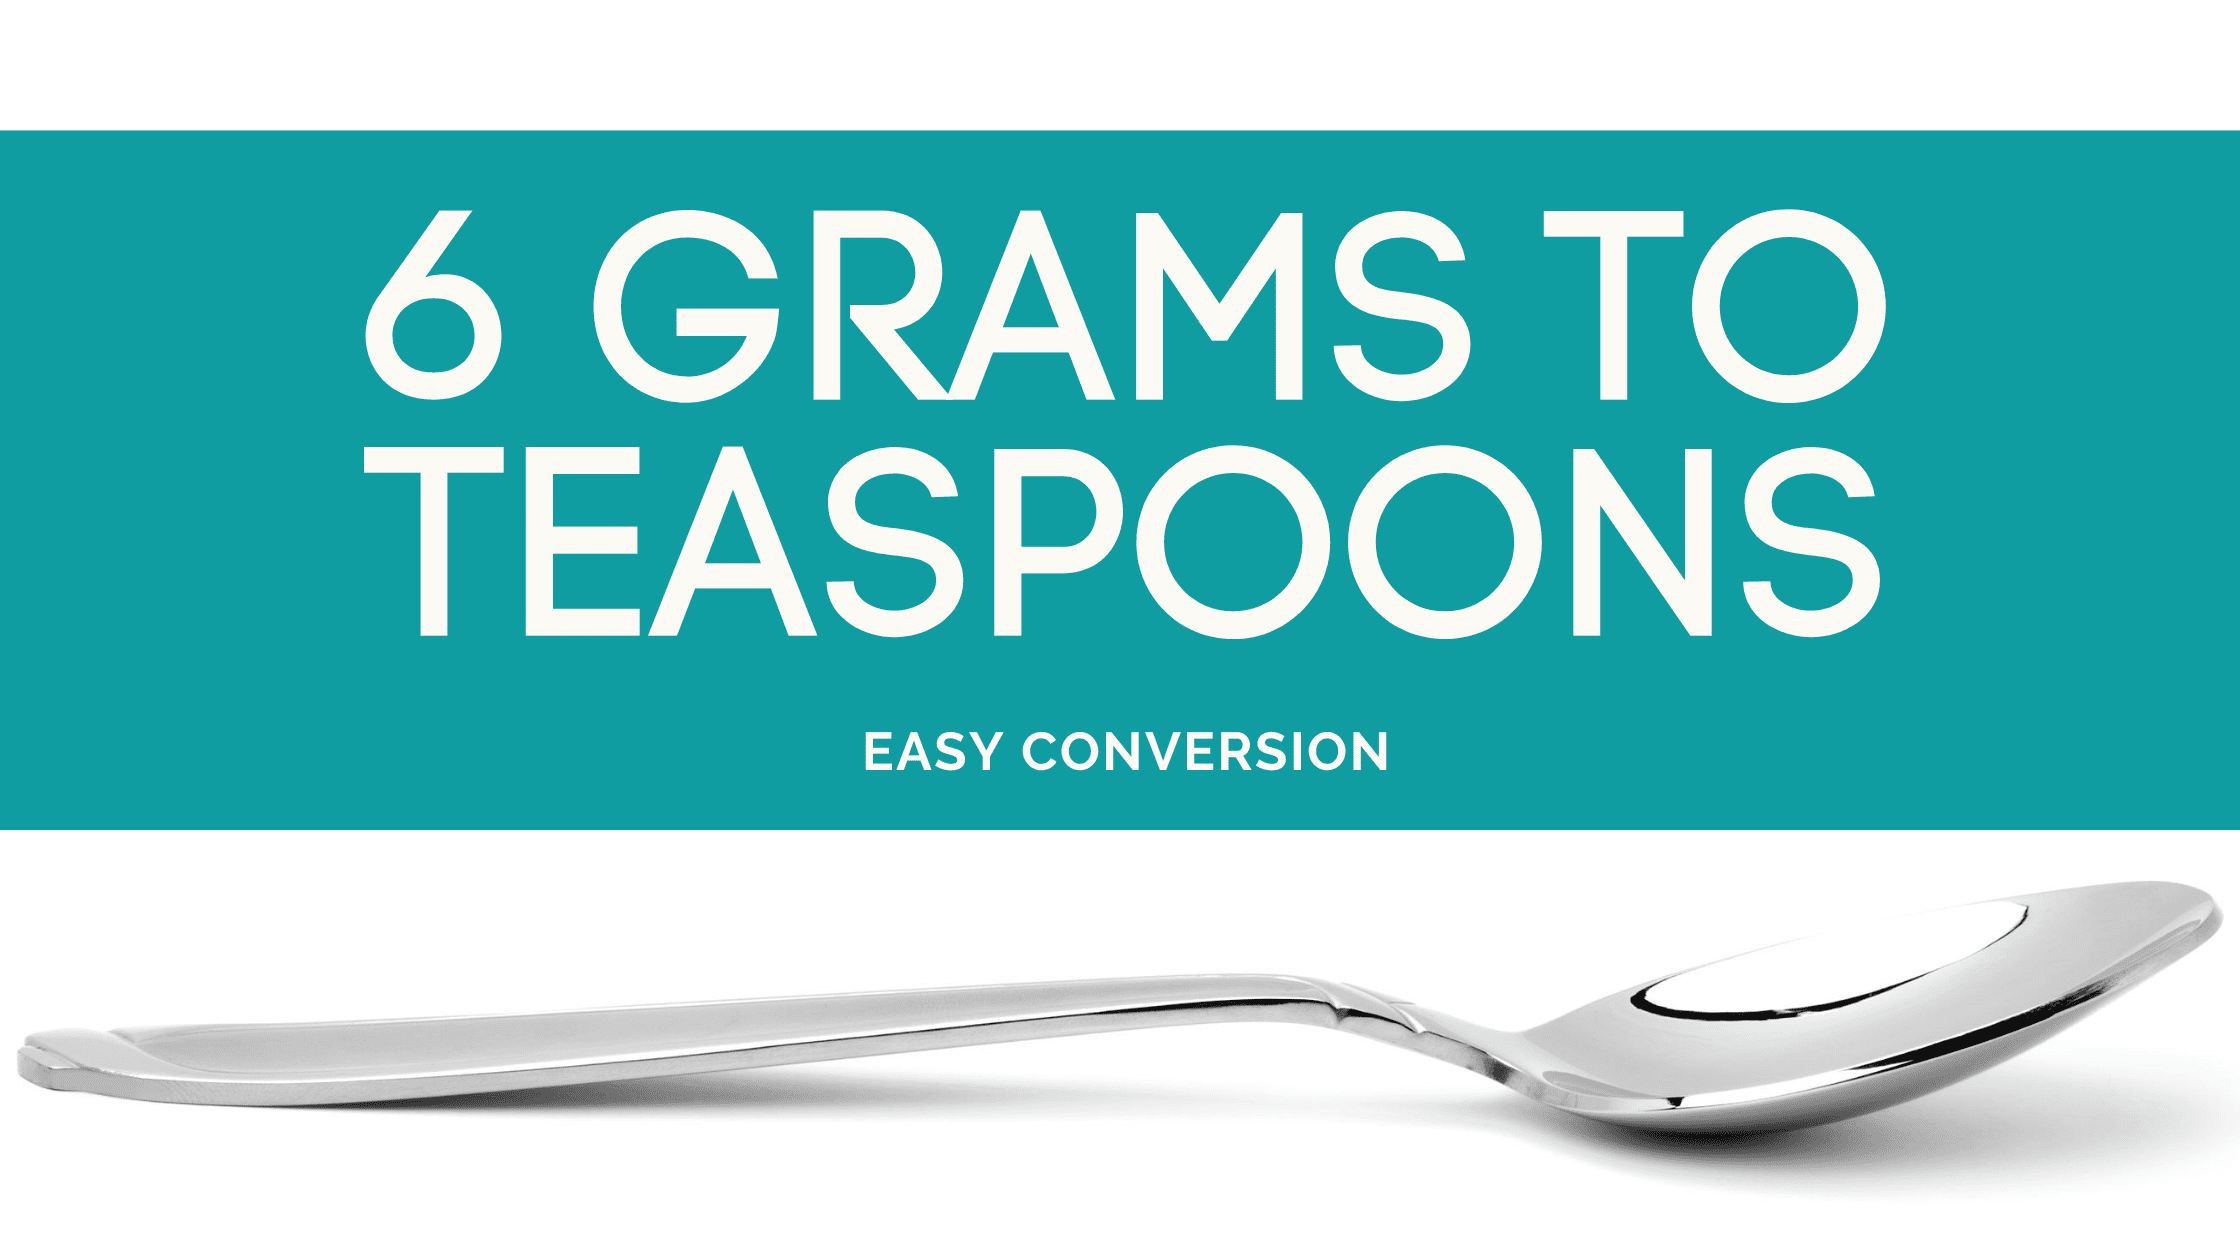 6 Grams to Teaspoons - g to tsp - how many grams in teaspoon